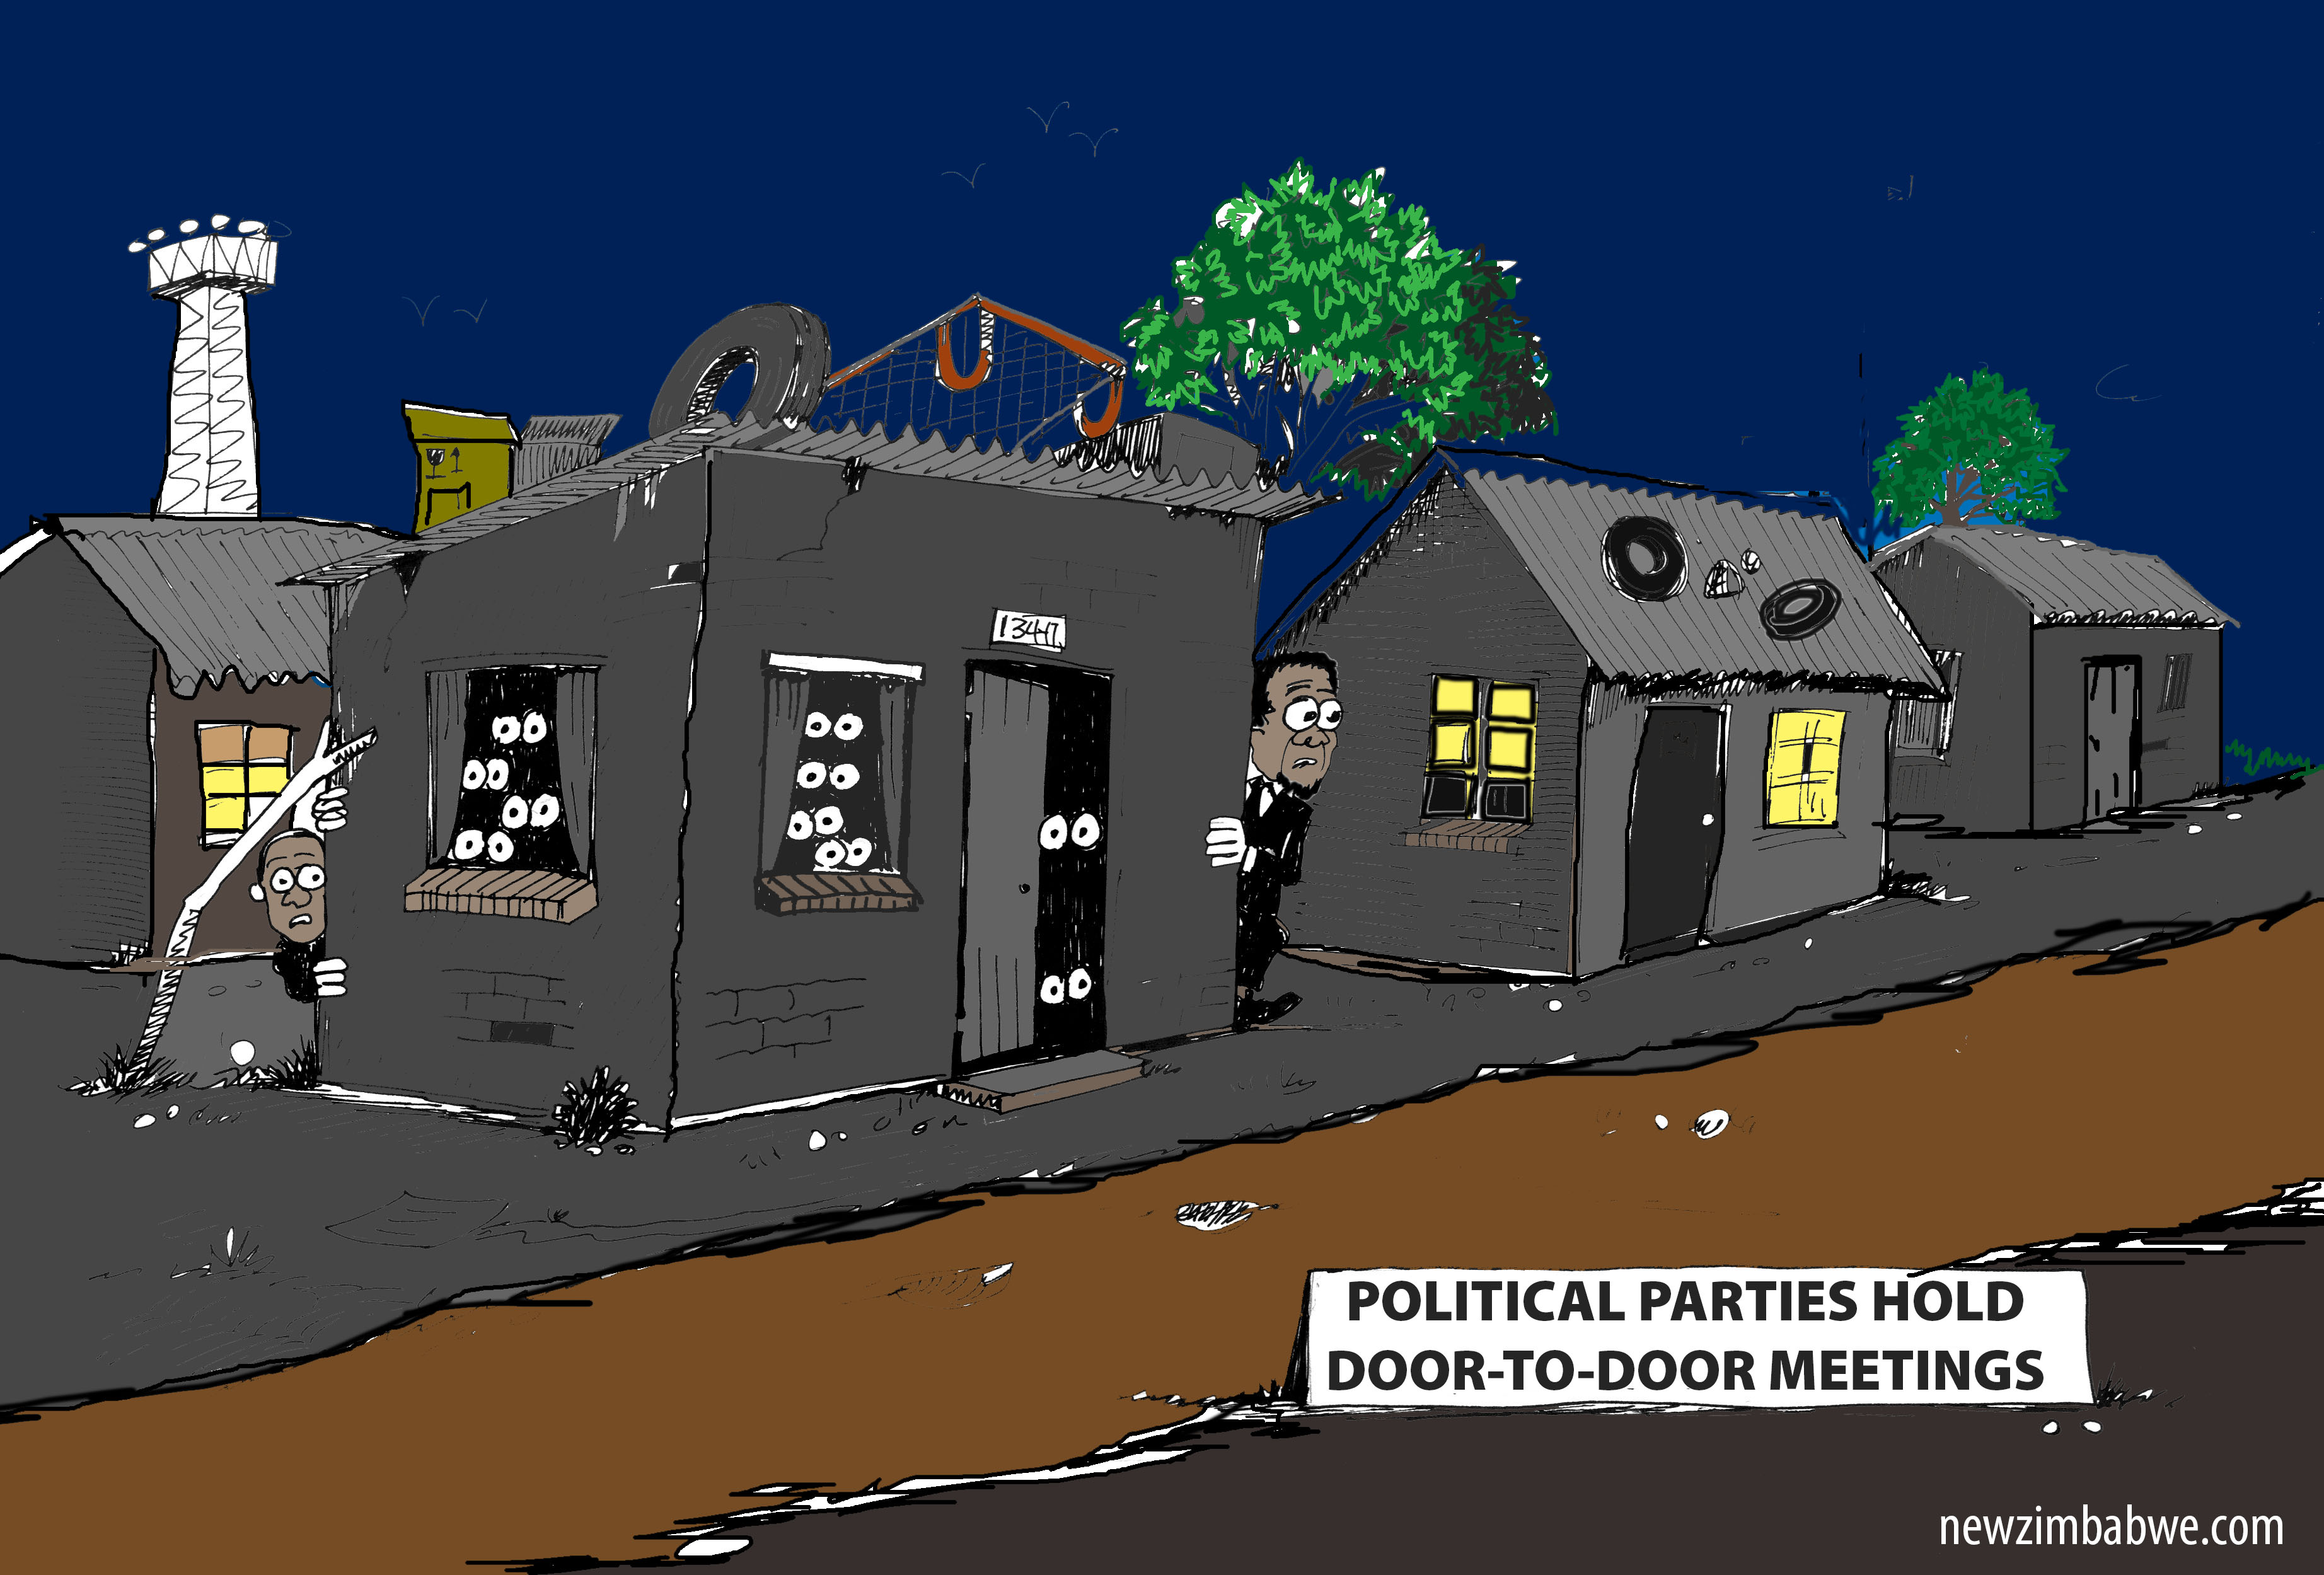 OF POLITCAL PARTIES AND SECRET DOOR TO DOOR MEETING